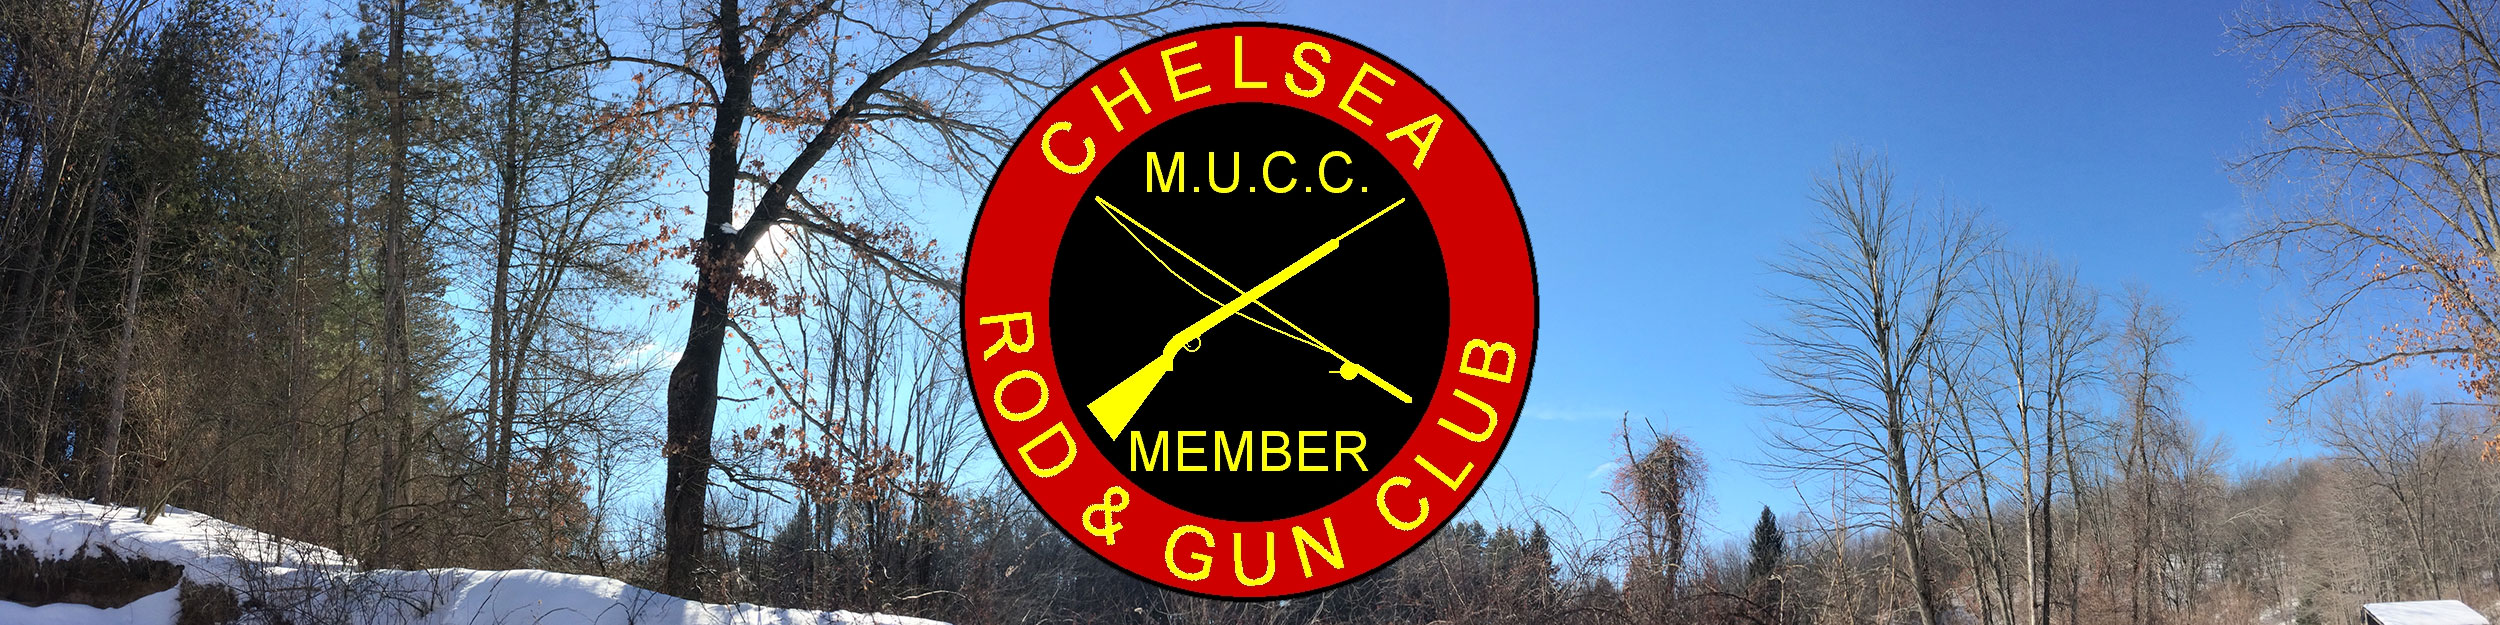 Chelsea Rod & Gun Club